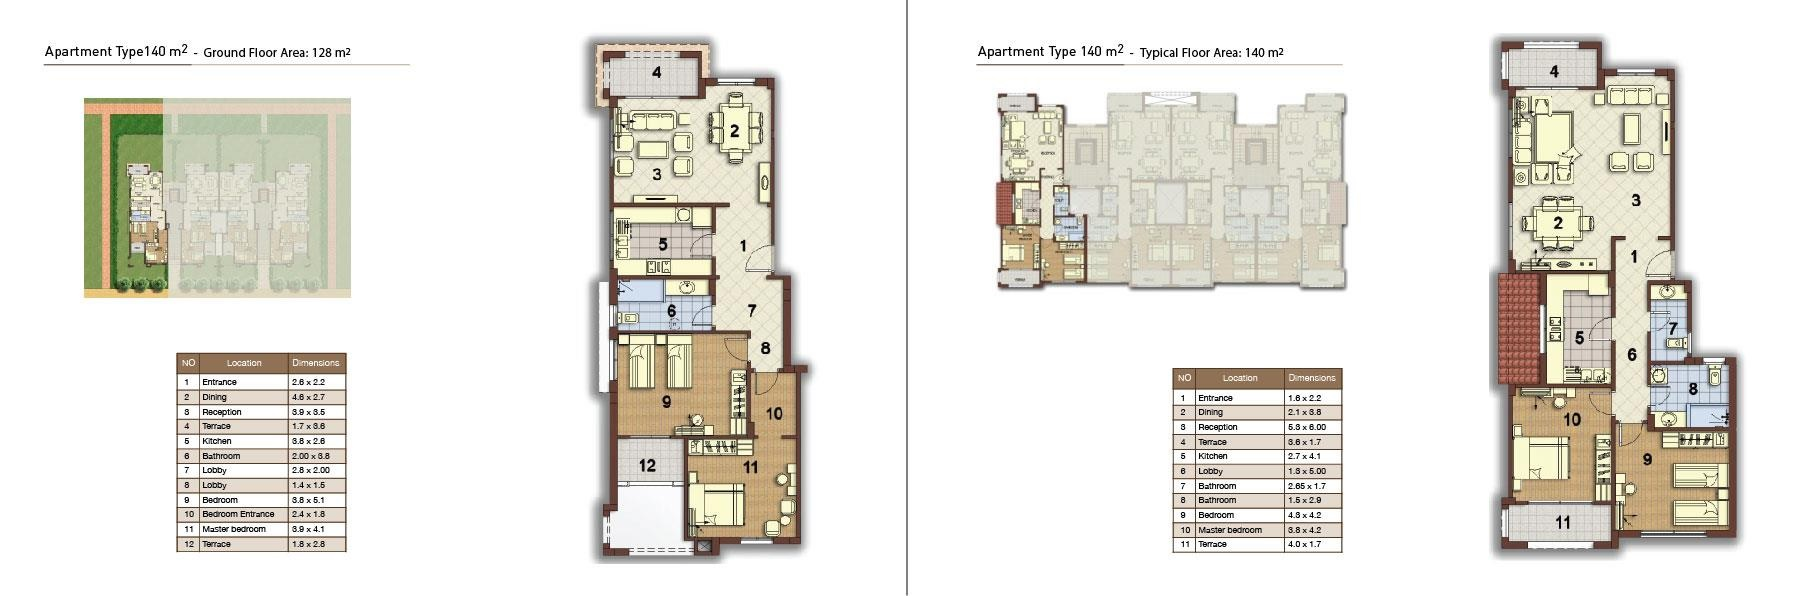 apartment type 140 corner 01